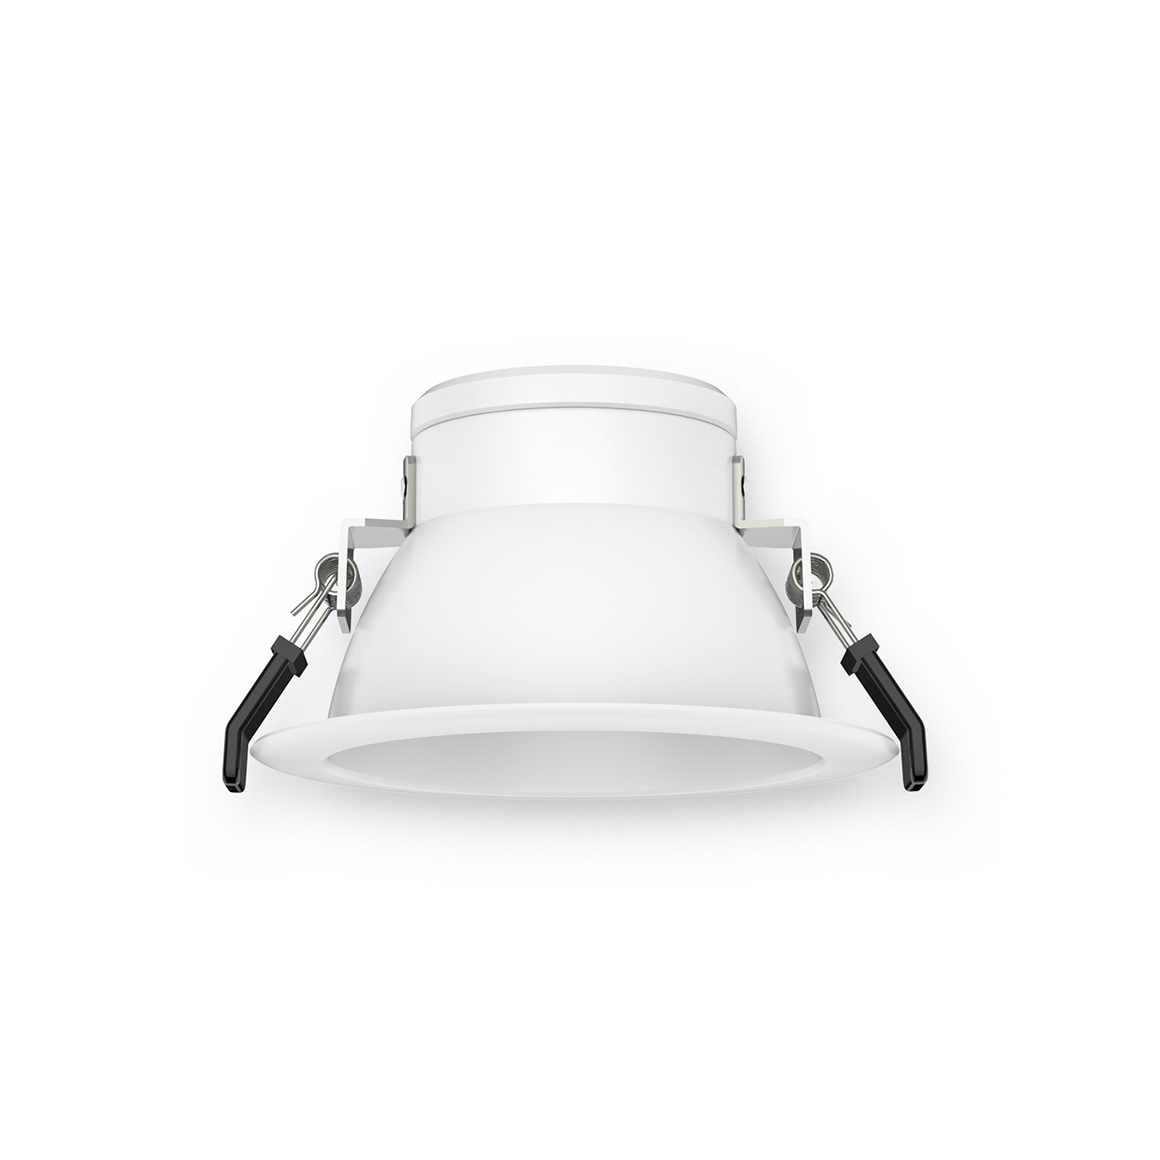 DownLight DS1 1450lm